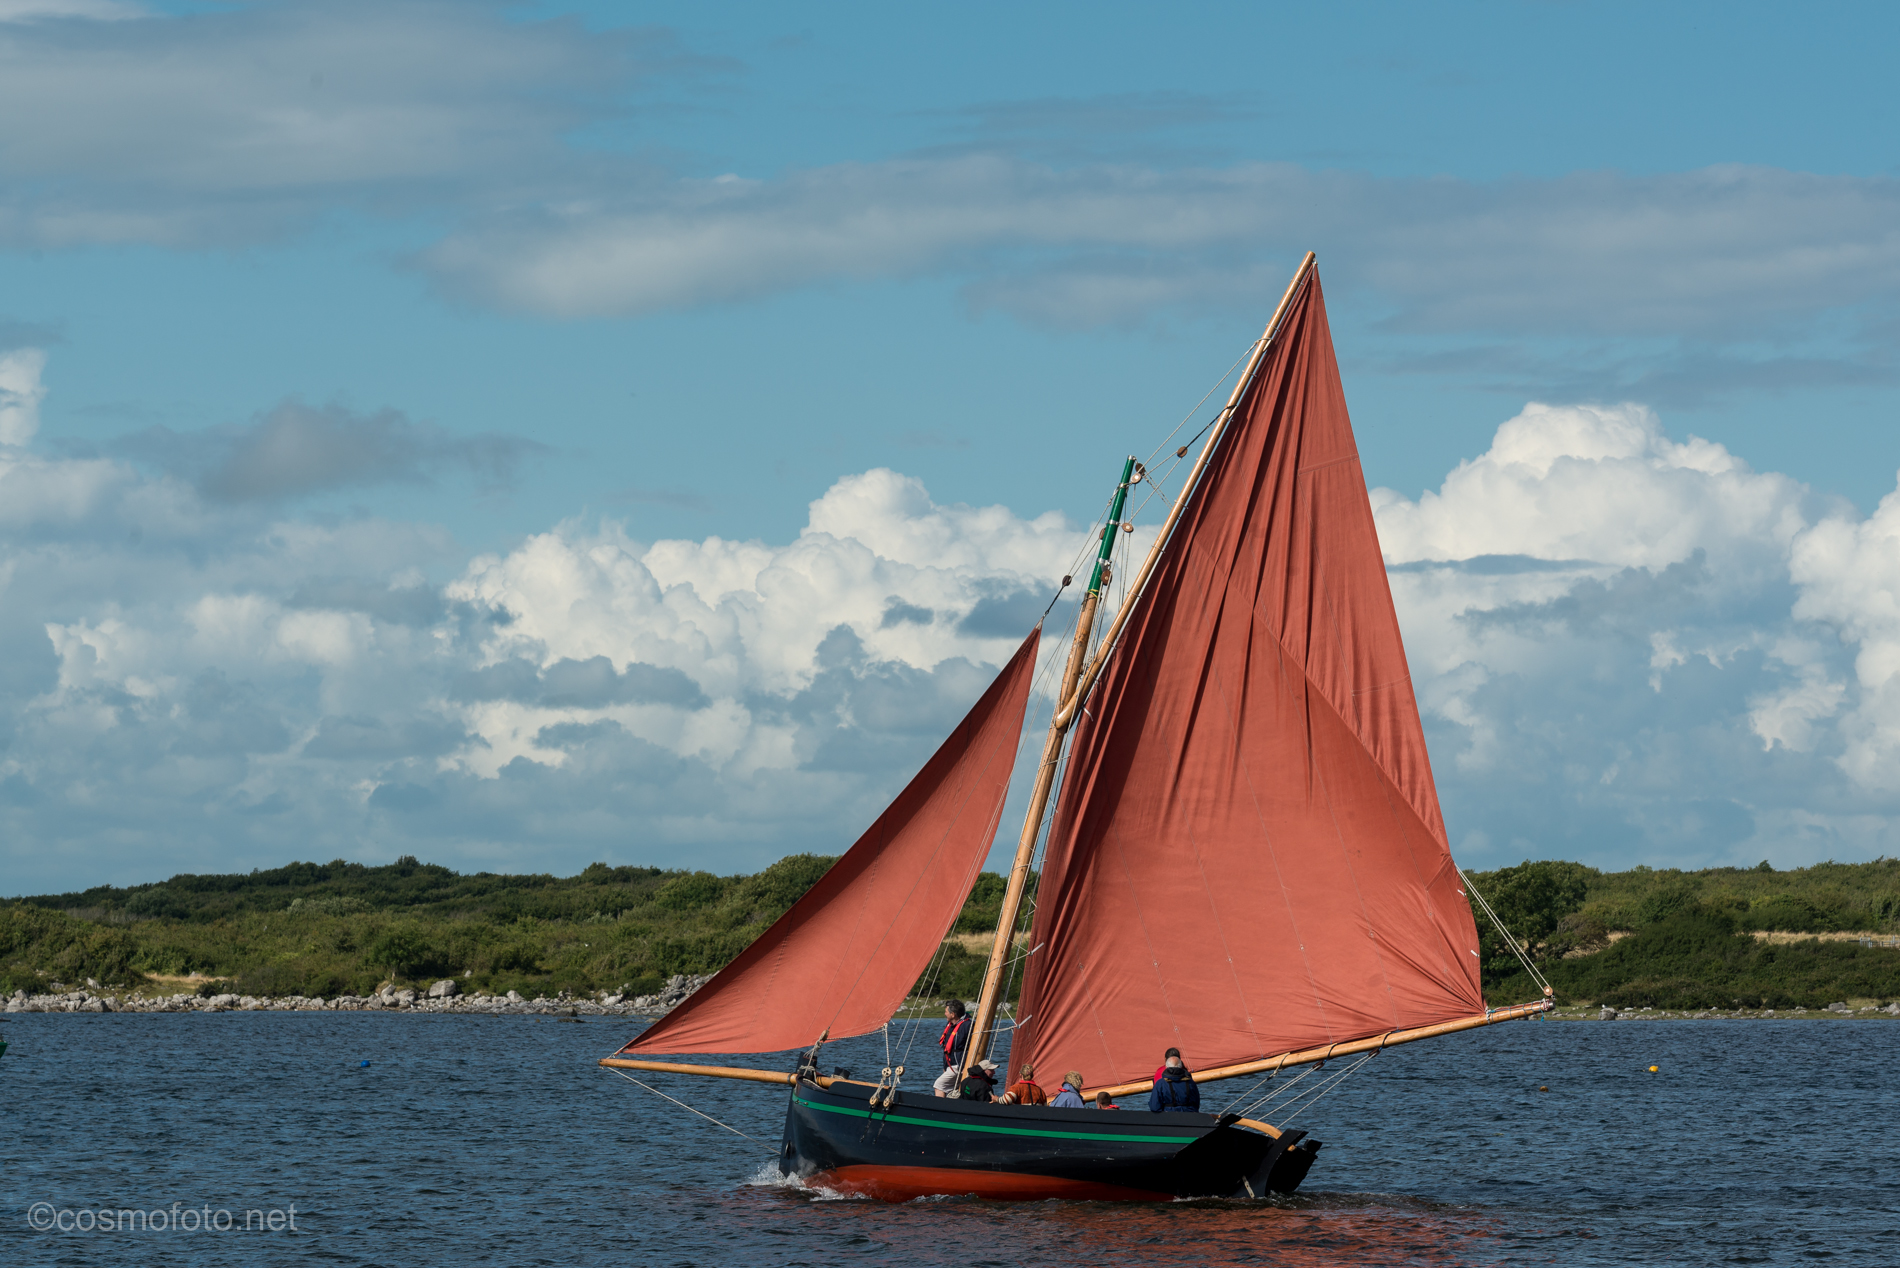 Red sails, the trademark of a Galway hooker